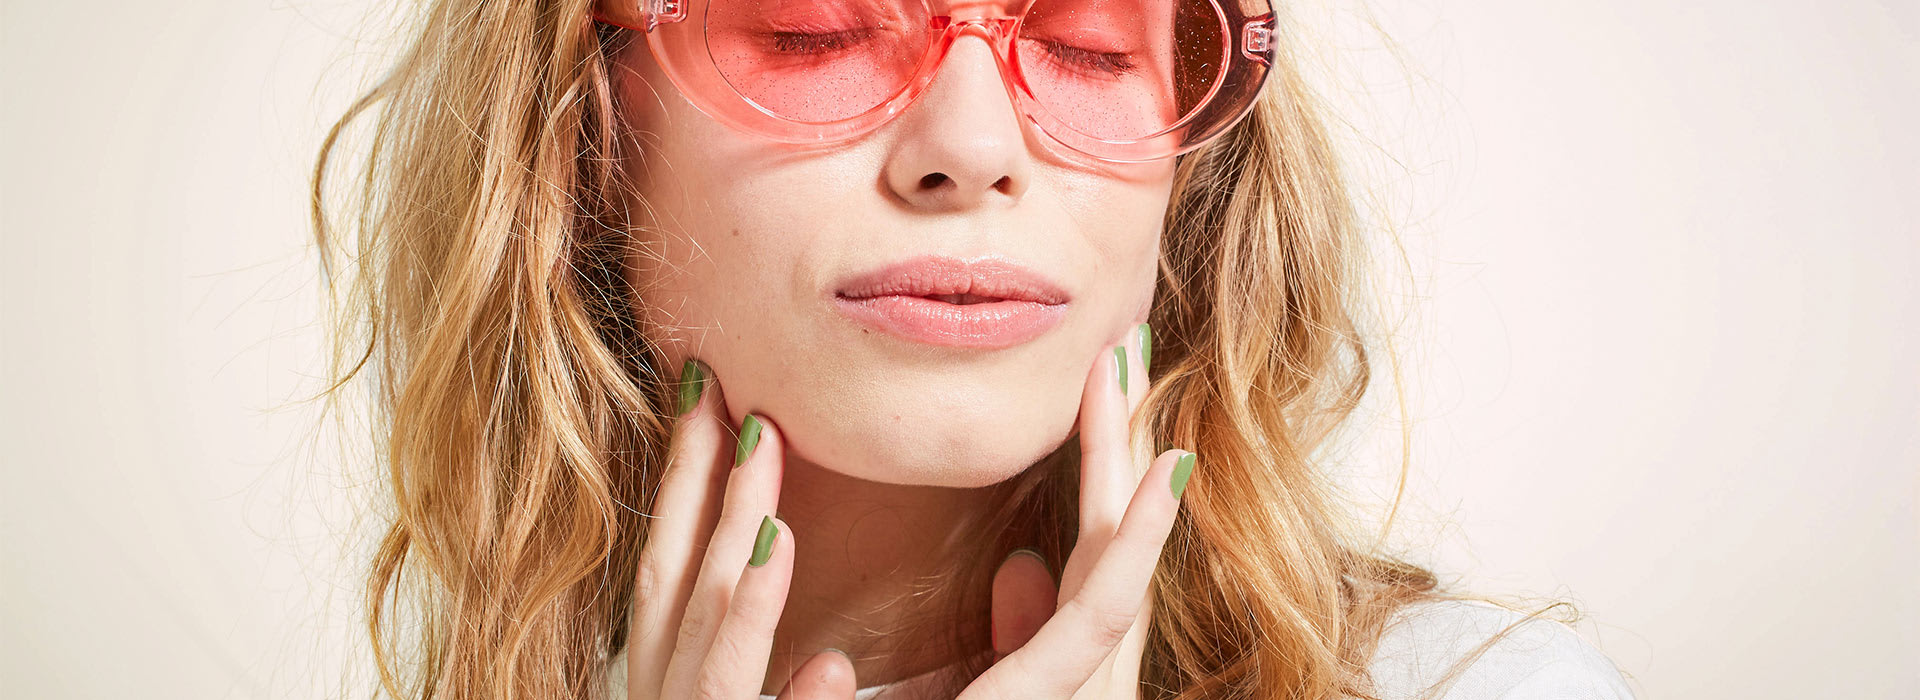 Woman in sunglasses touching her face